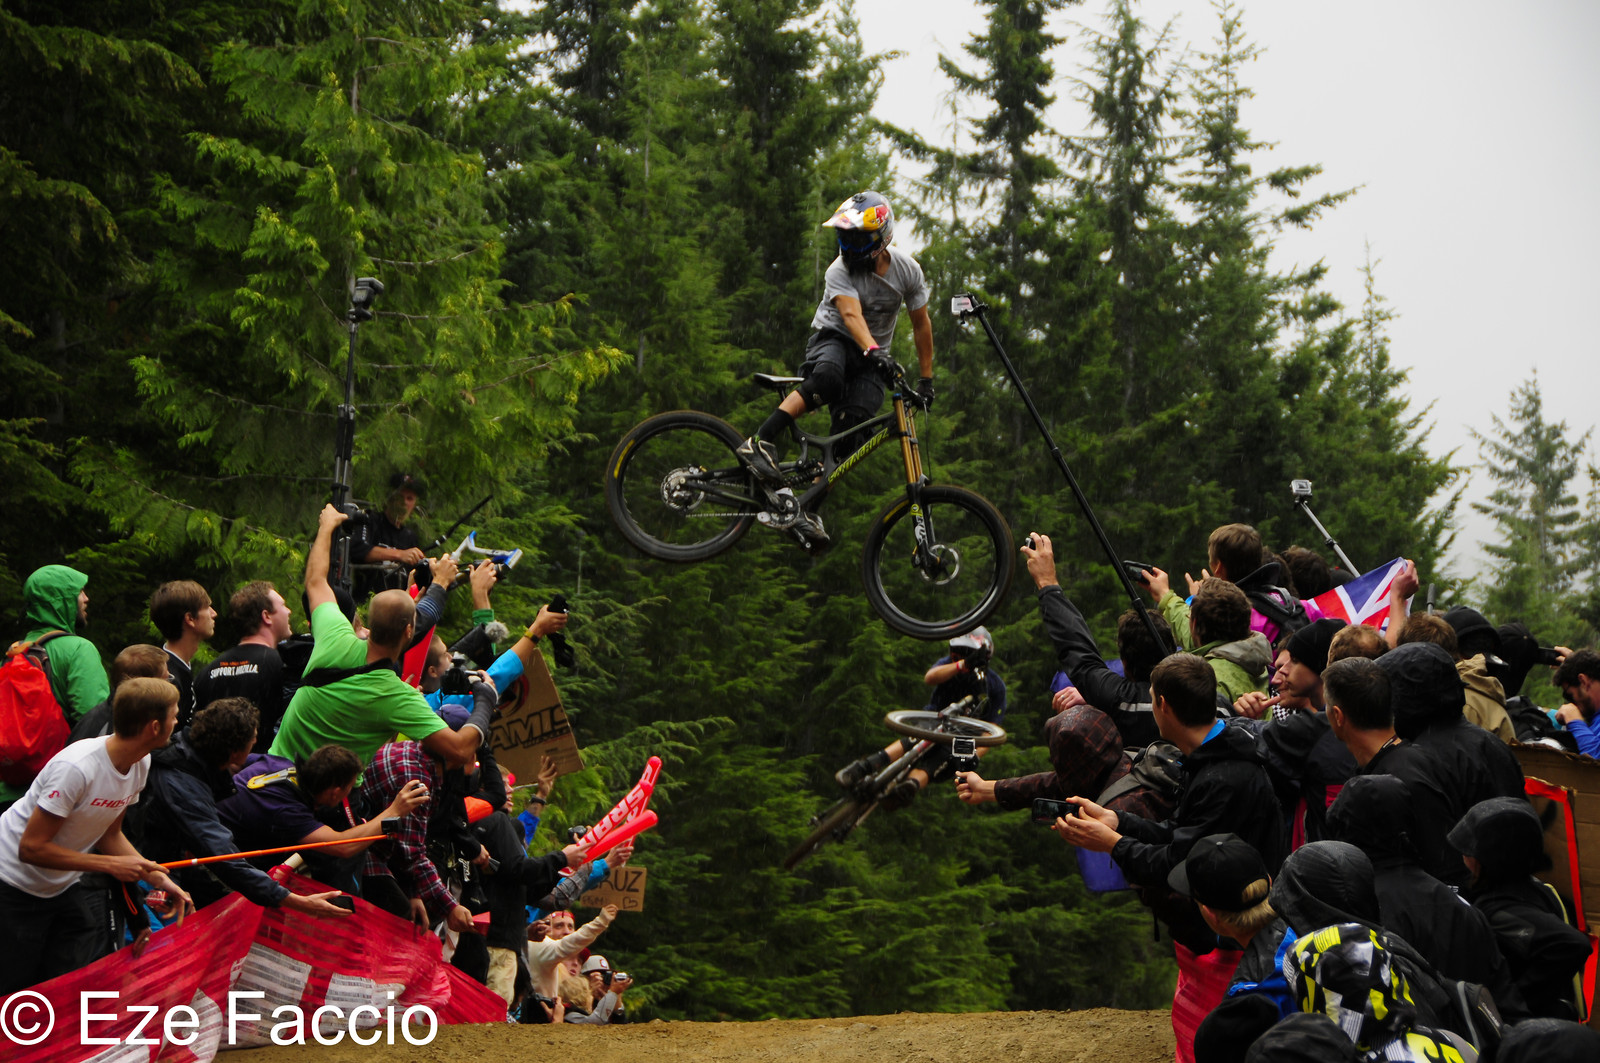 Bernardo Cruz #1 whip of the wolrd - ezefaccio - Mountain Biking Pictures - Vital MTB